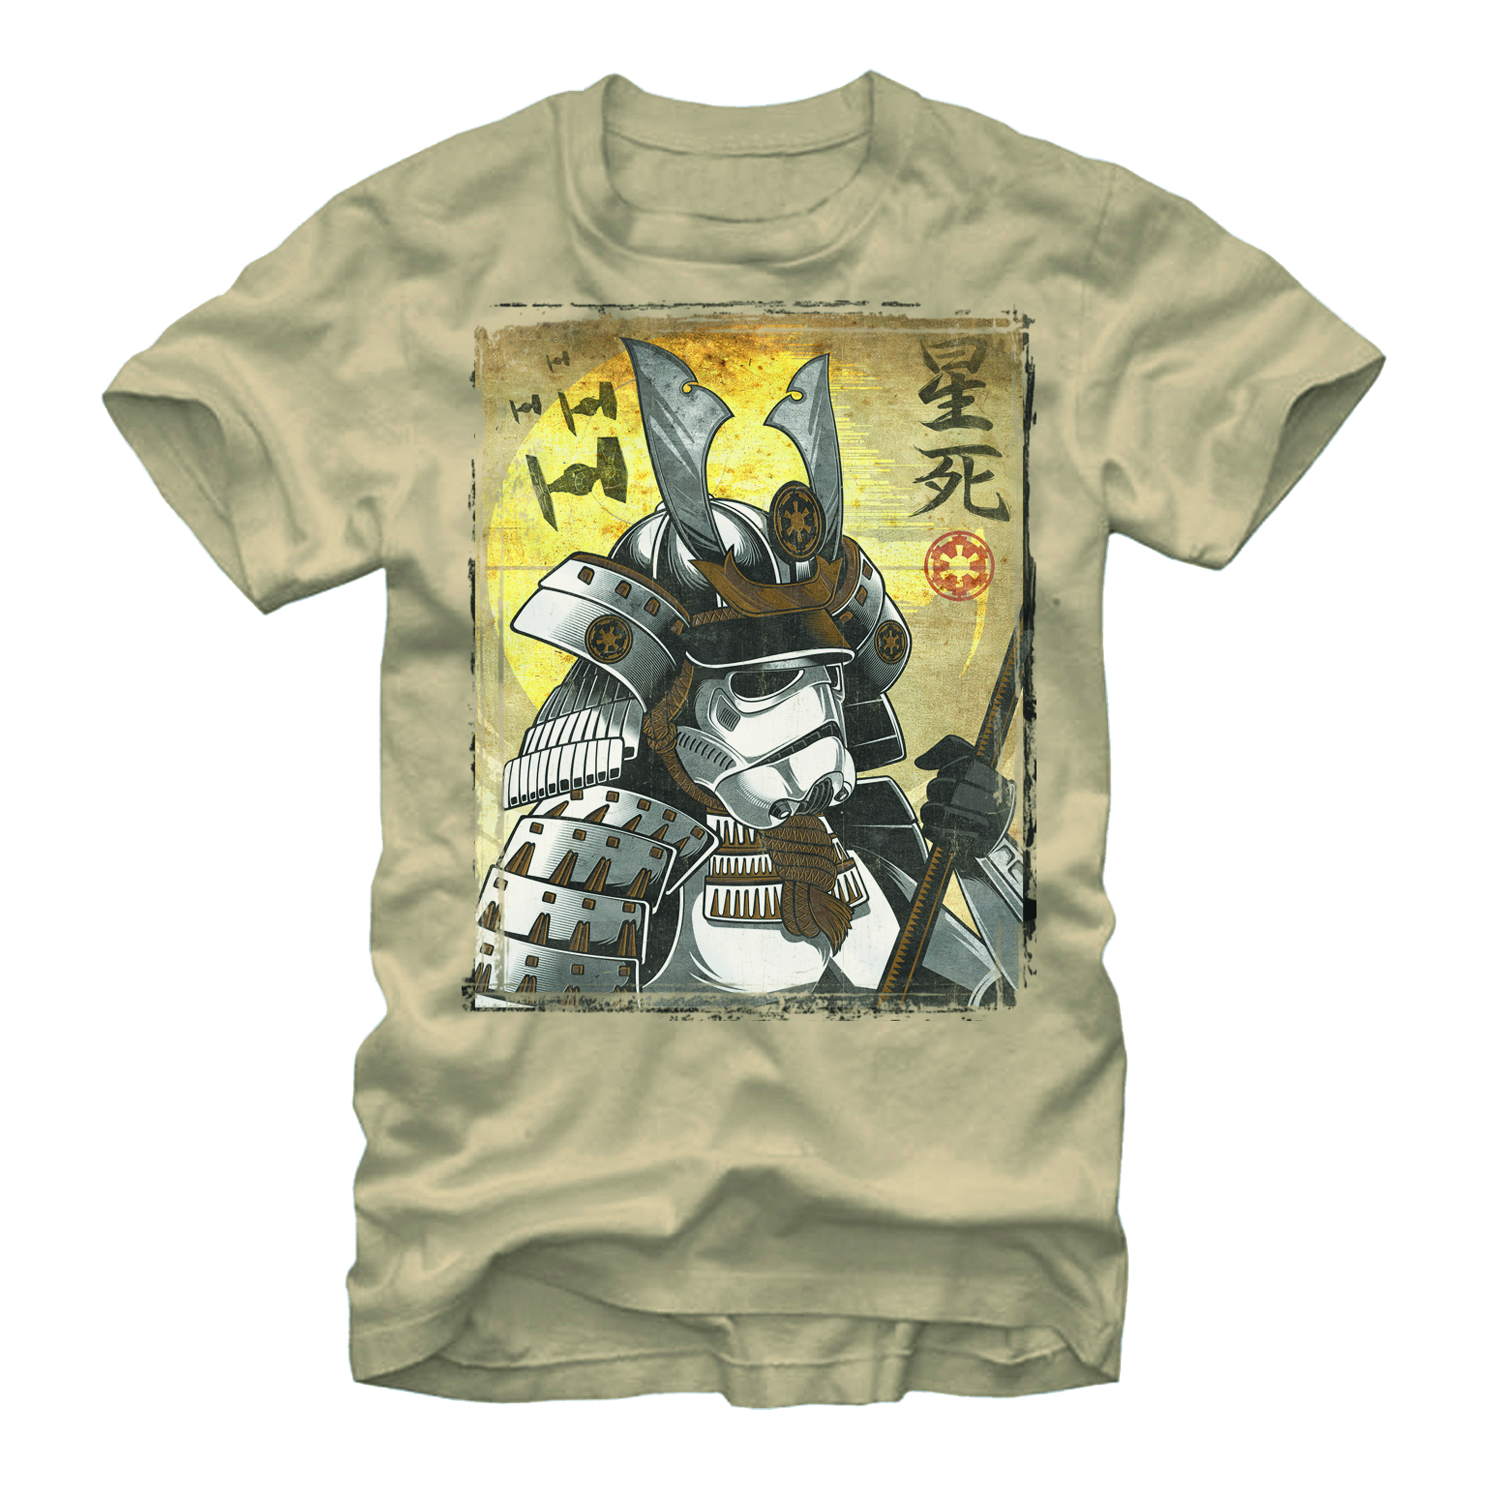 STAR WARS SAMURAI TROOPER T/S XL